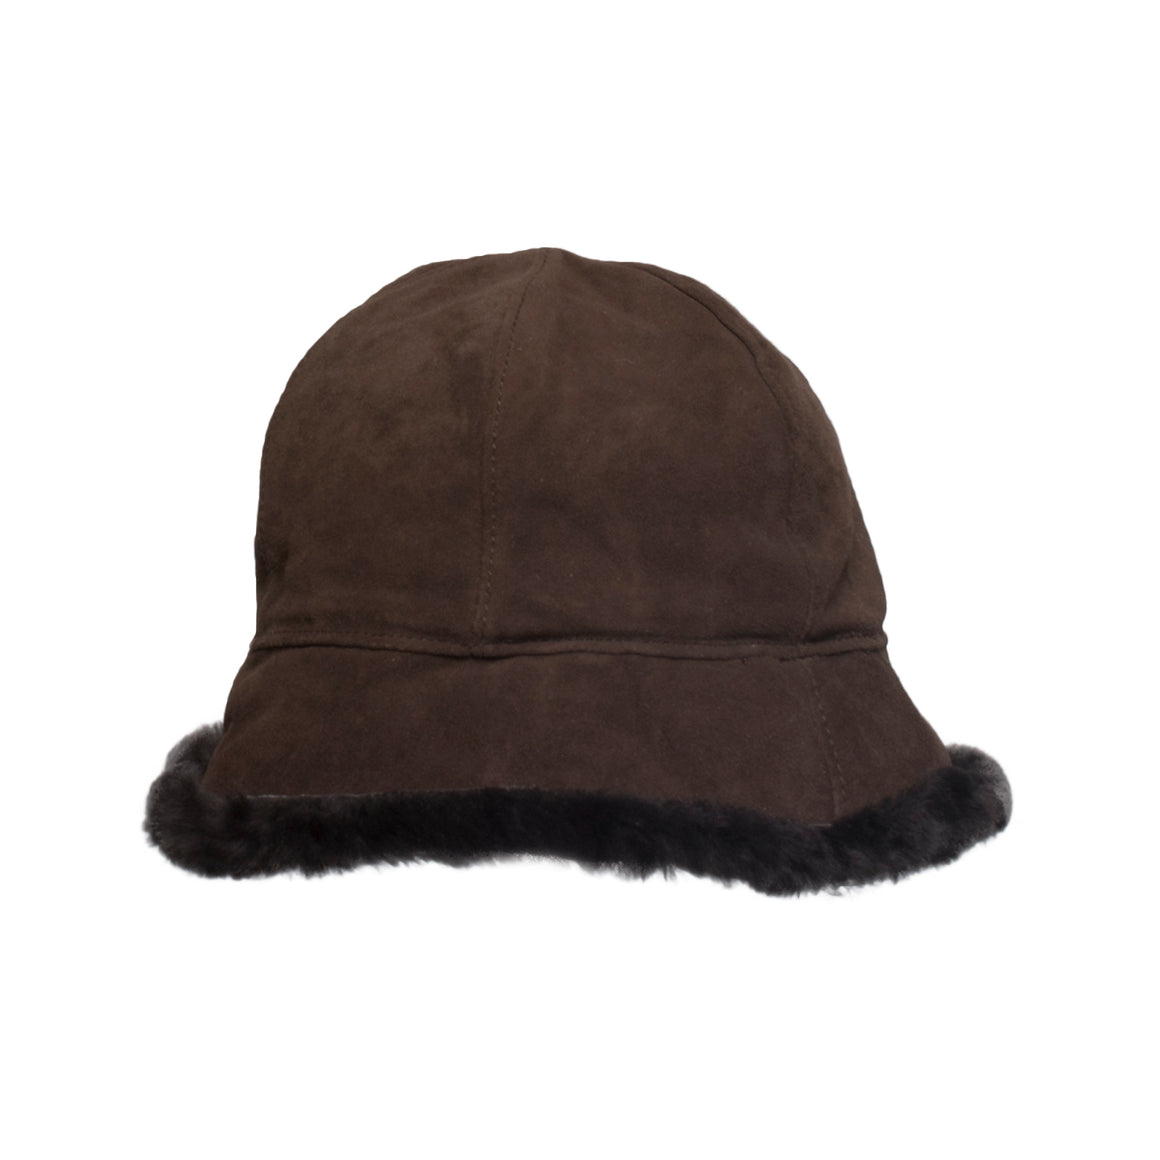 b6541f94658 ... UGG Suede Fleece Lined Cloche Chocolate Hat - Women s